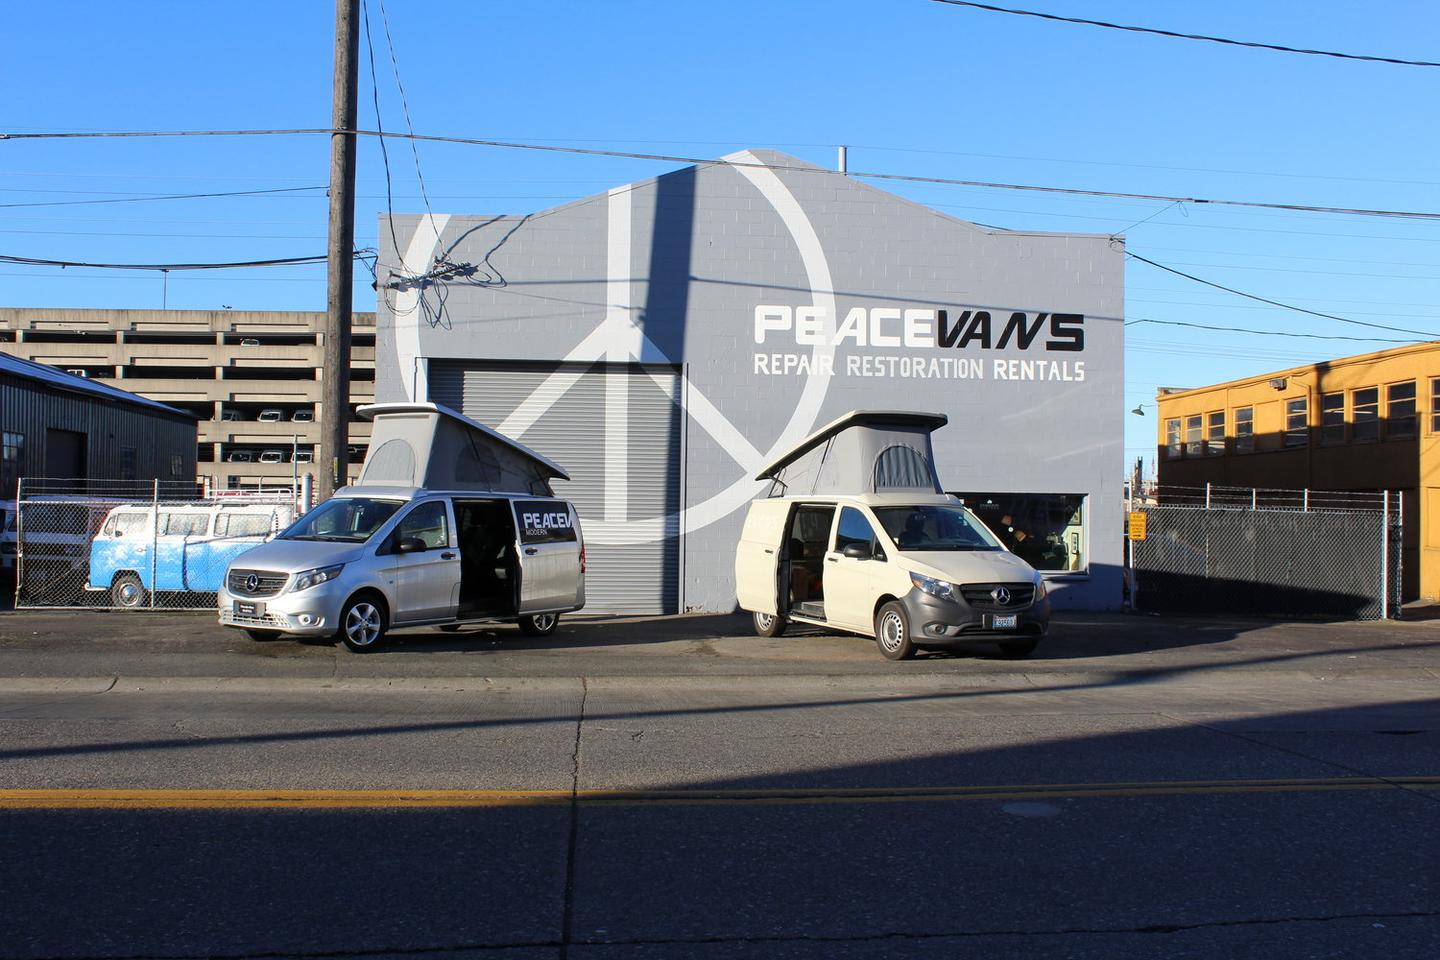 Peace Vans began as a VW camper van restoration and repair shop, branching out into conversions in late 2017